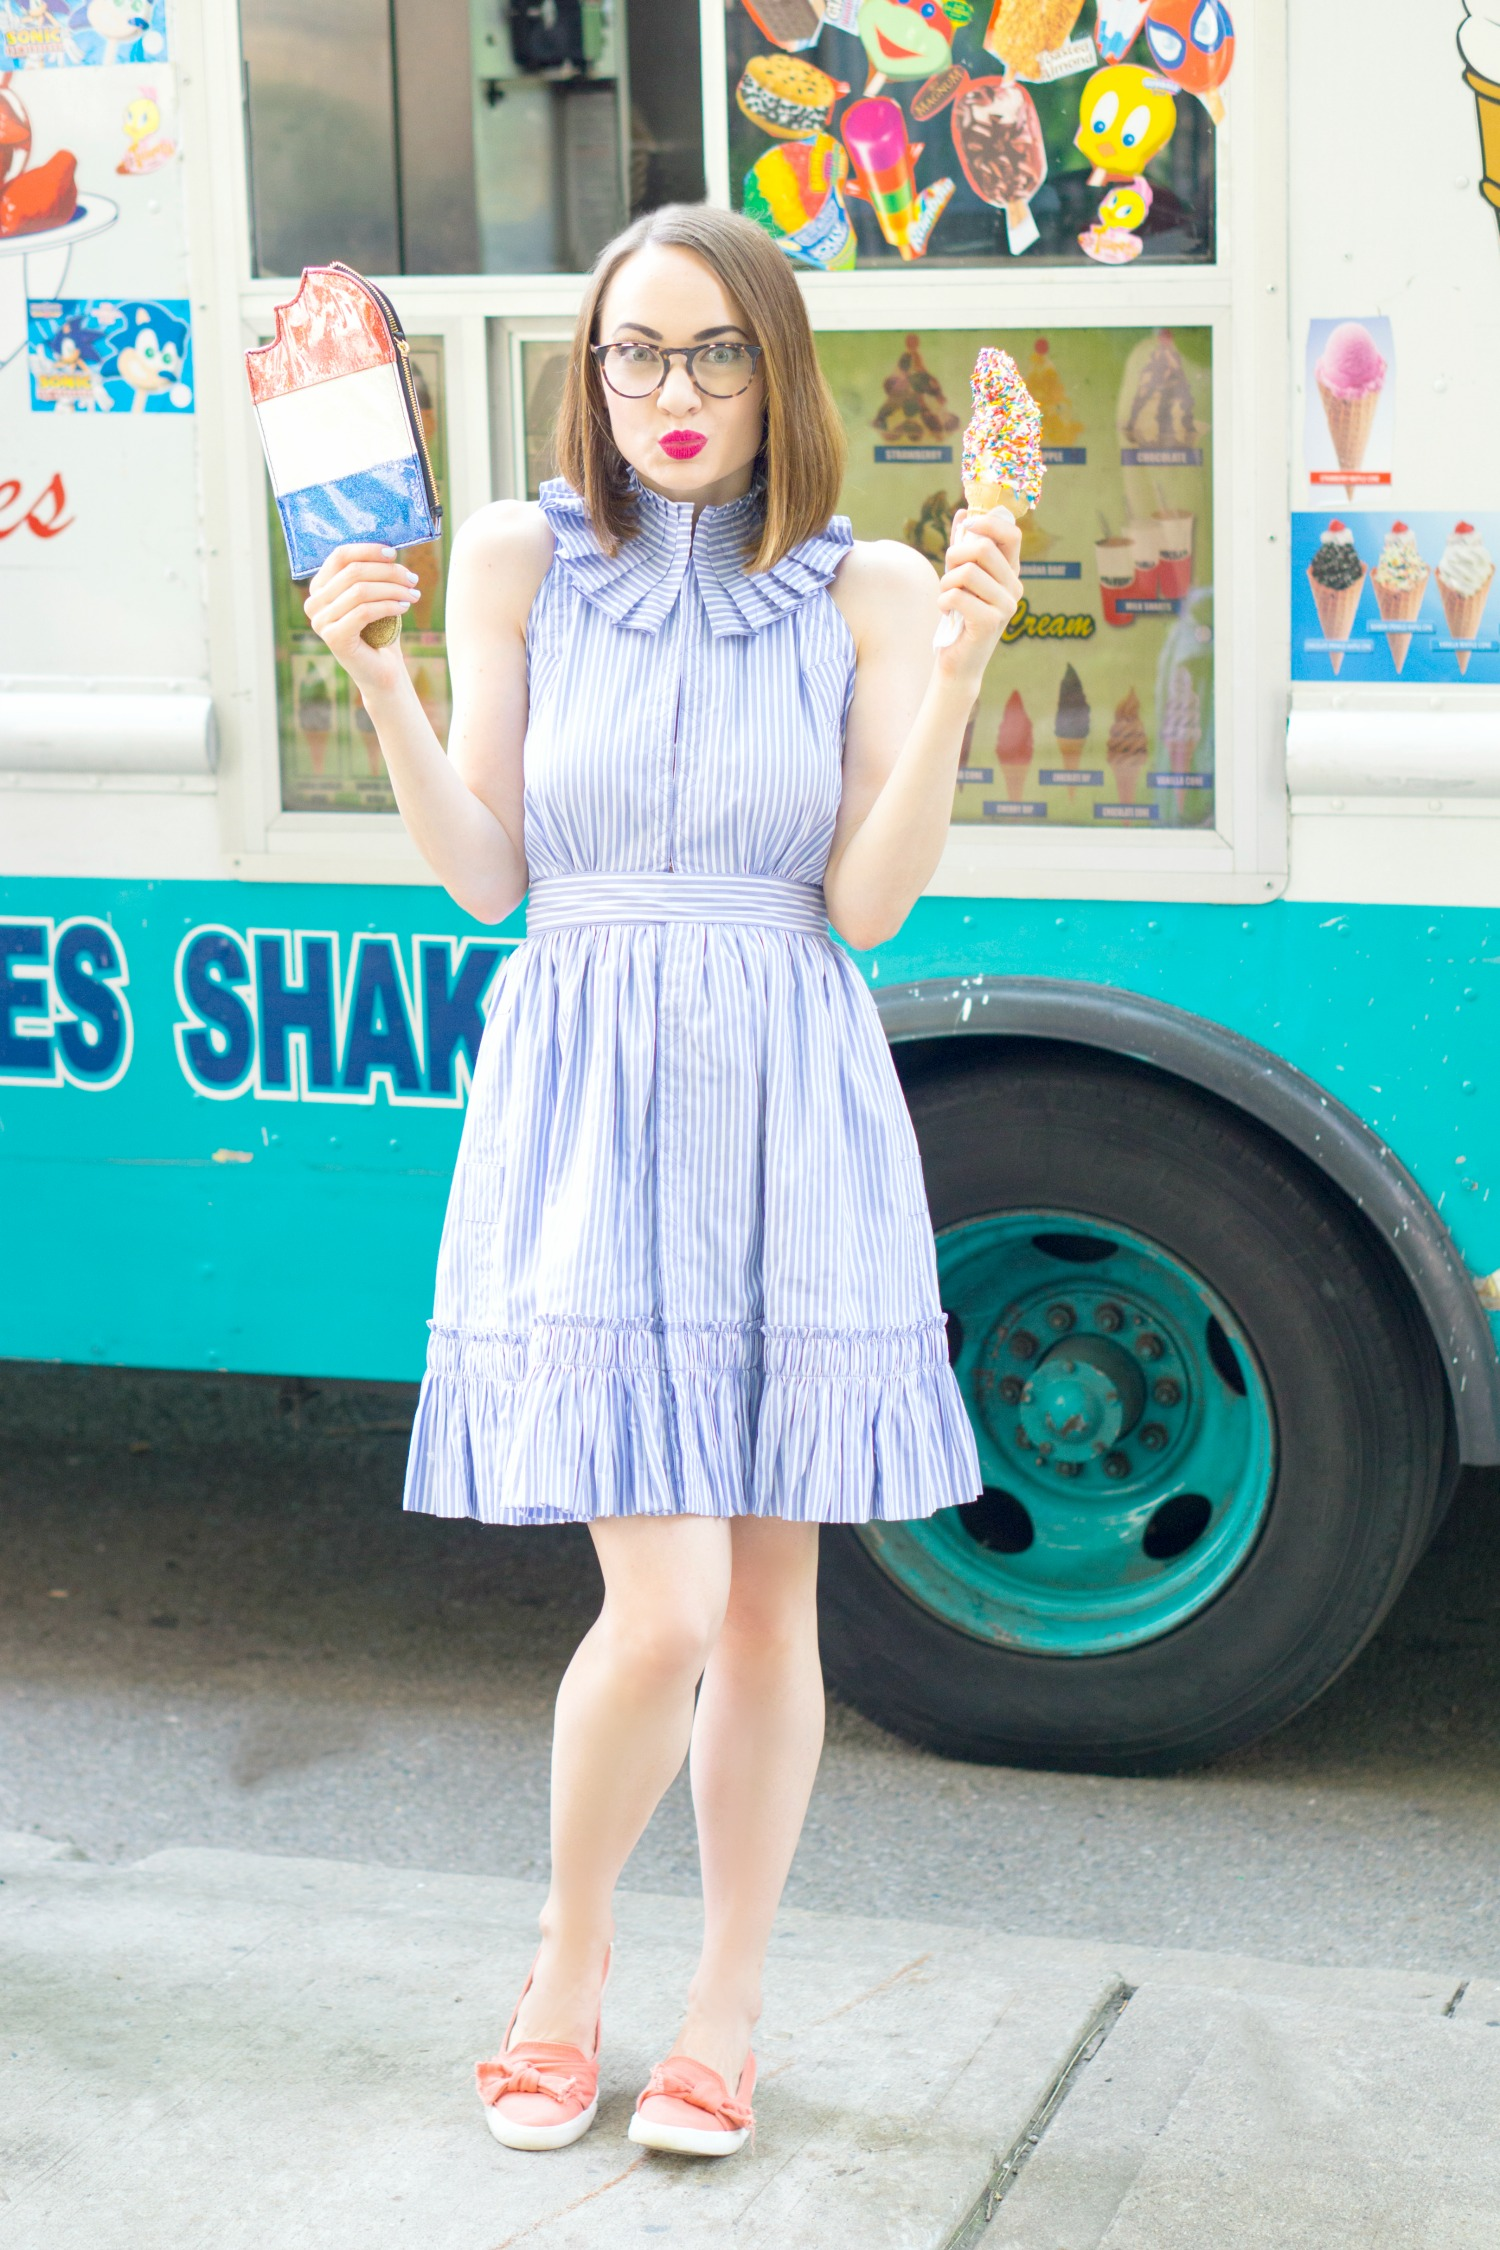 Alexis Briley Stripe Dress - July Fourth Outfit Ideas 2017